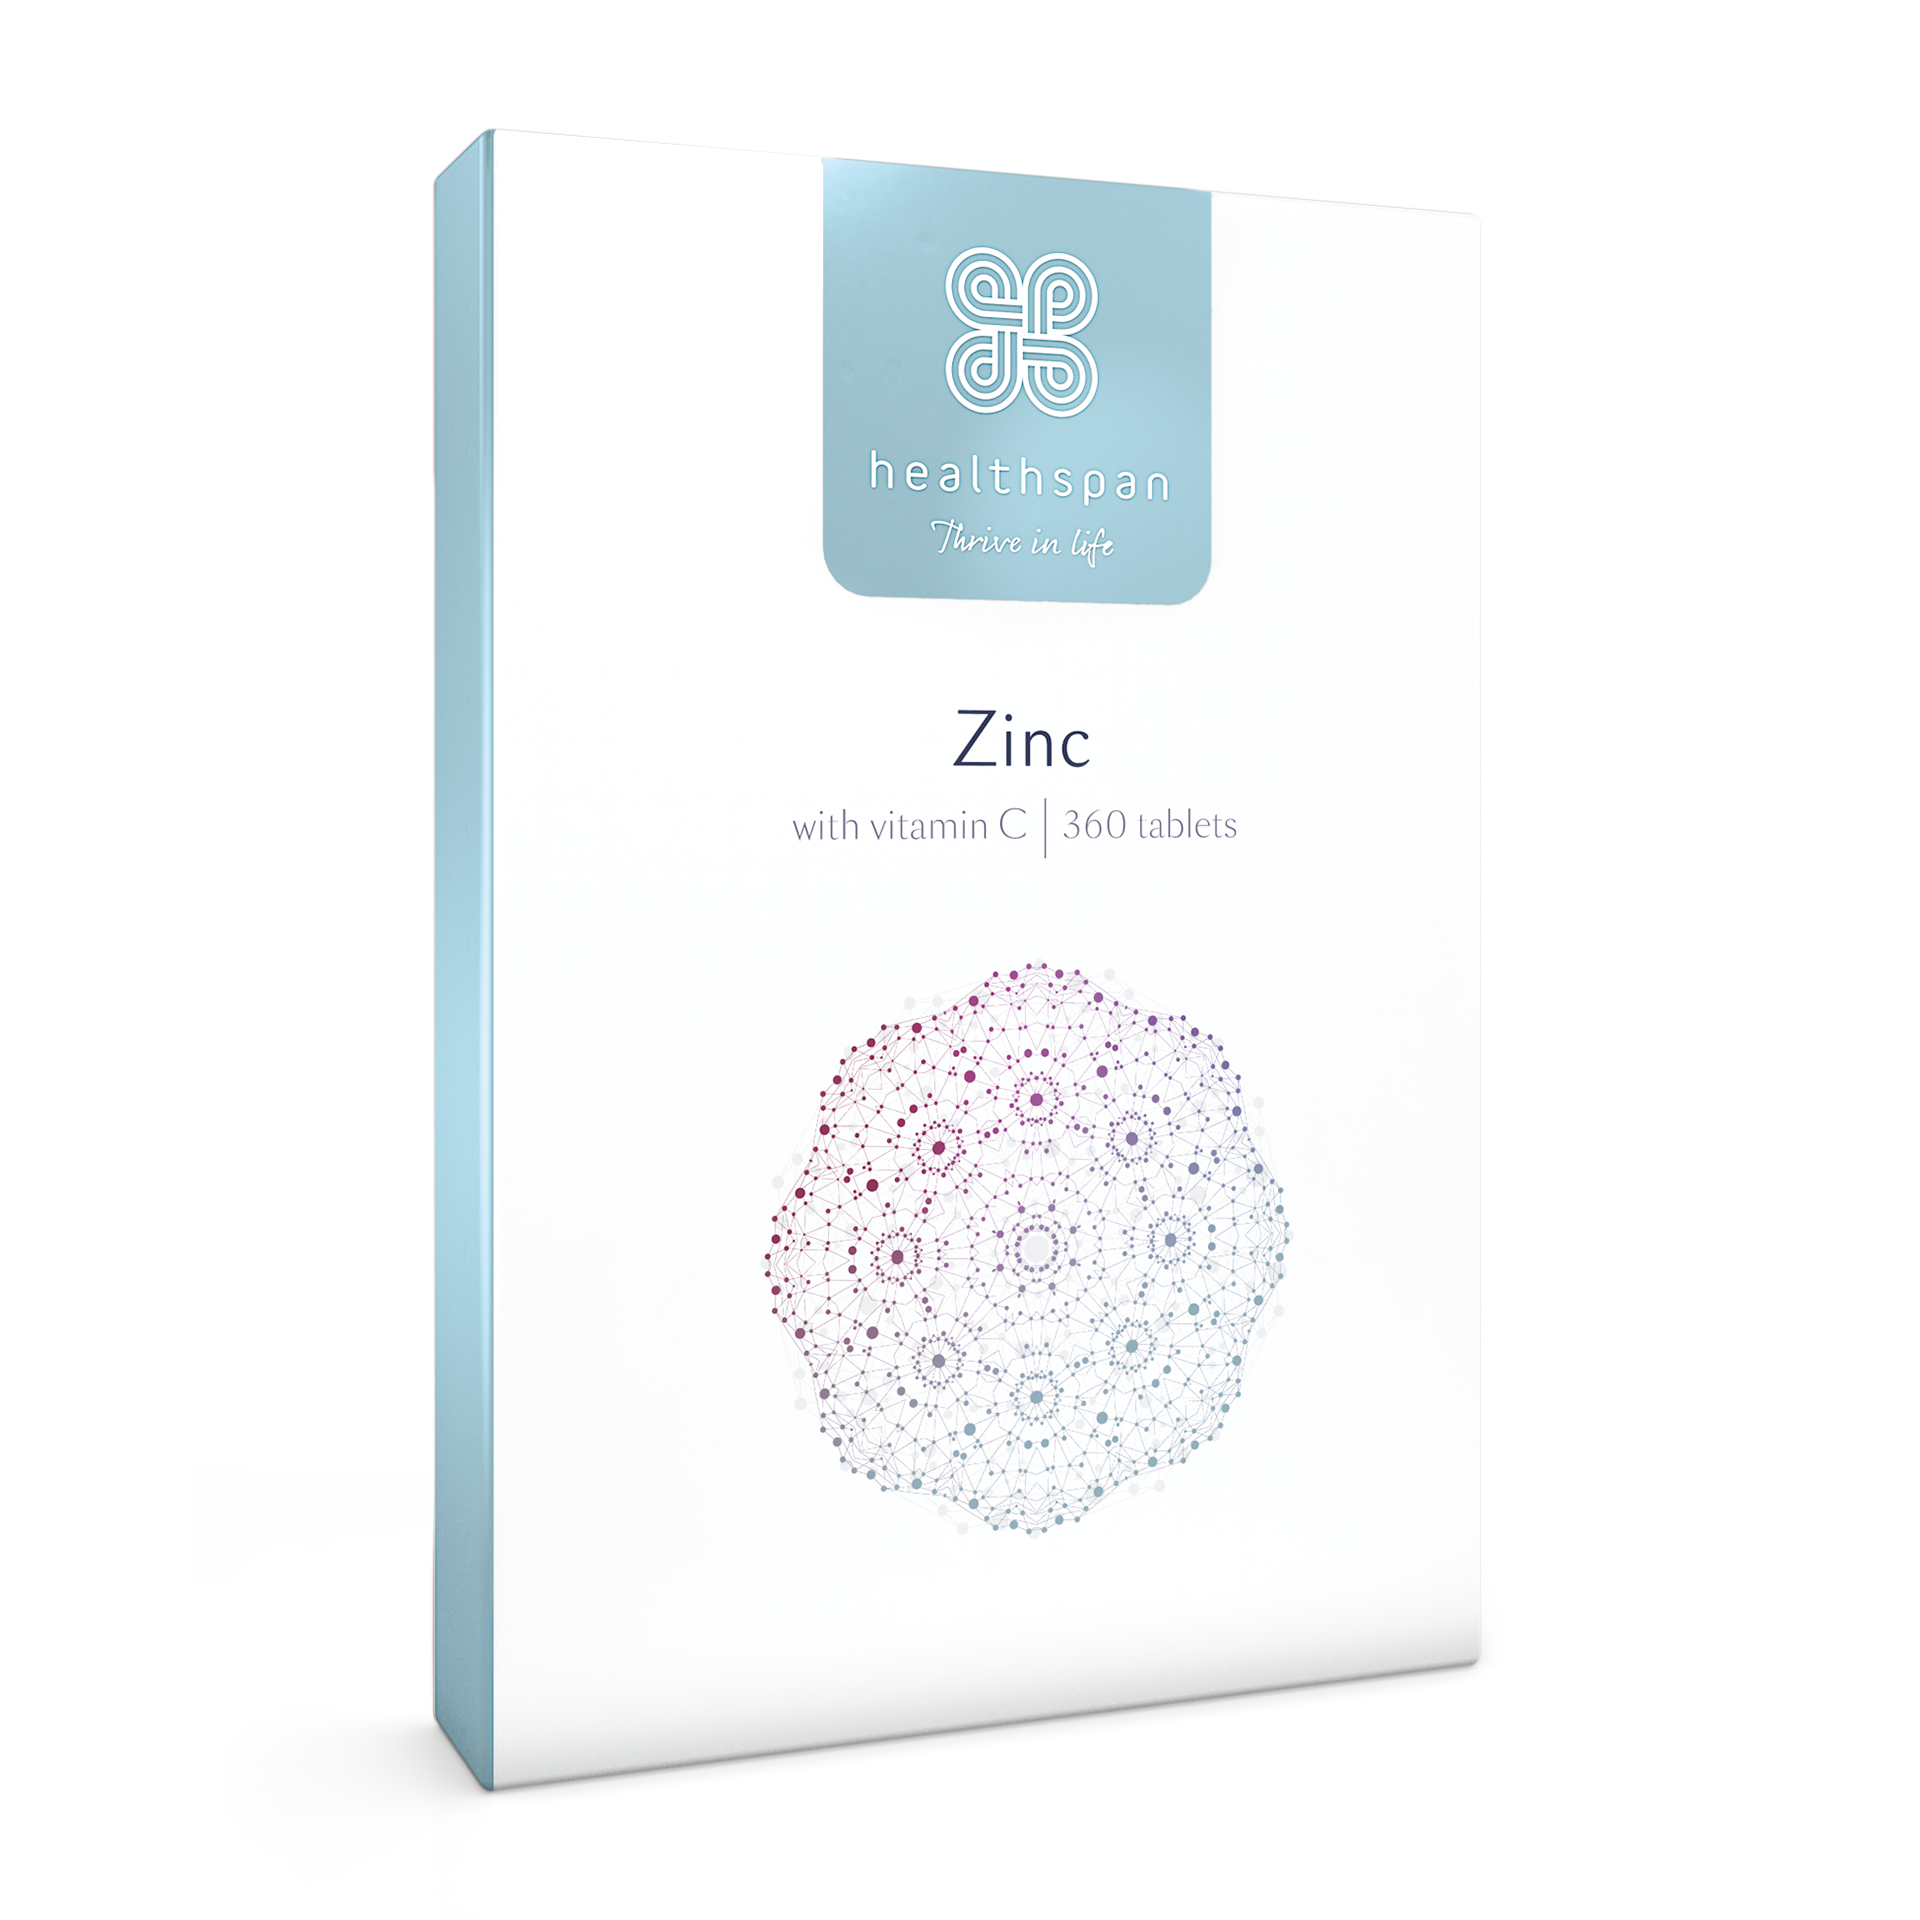 Zinc With Vitamin C - 360 Tablets